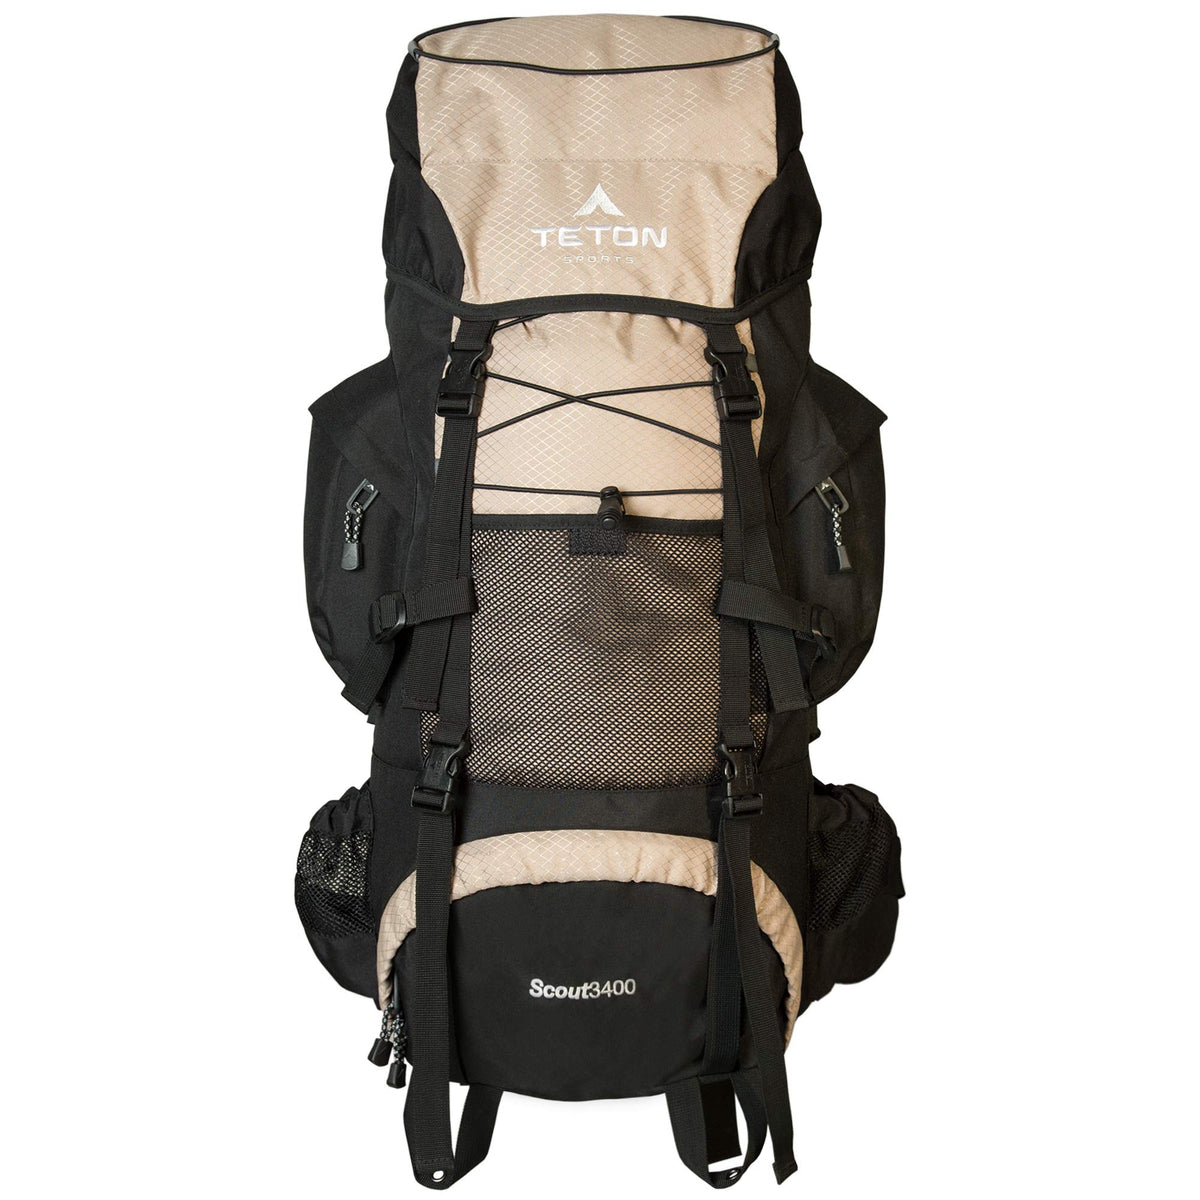 TETON Sports Scout 3400 Internal Frame Backpack; High-Performance Backpack for Backpacking, Hiking, Camping; Tan